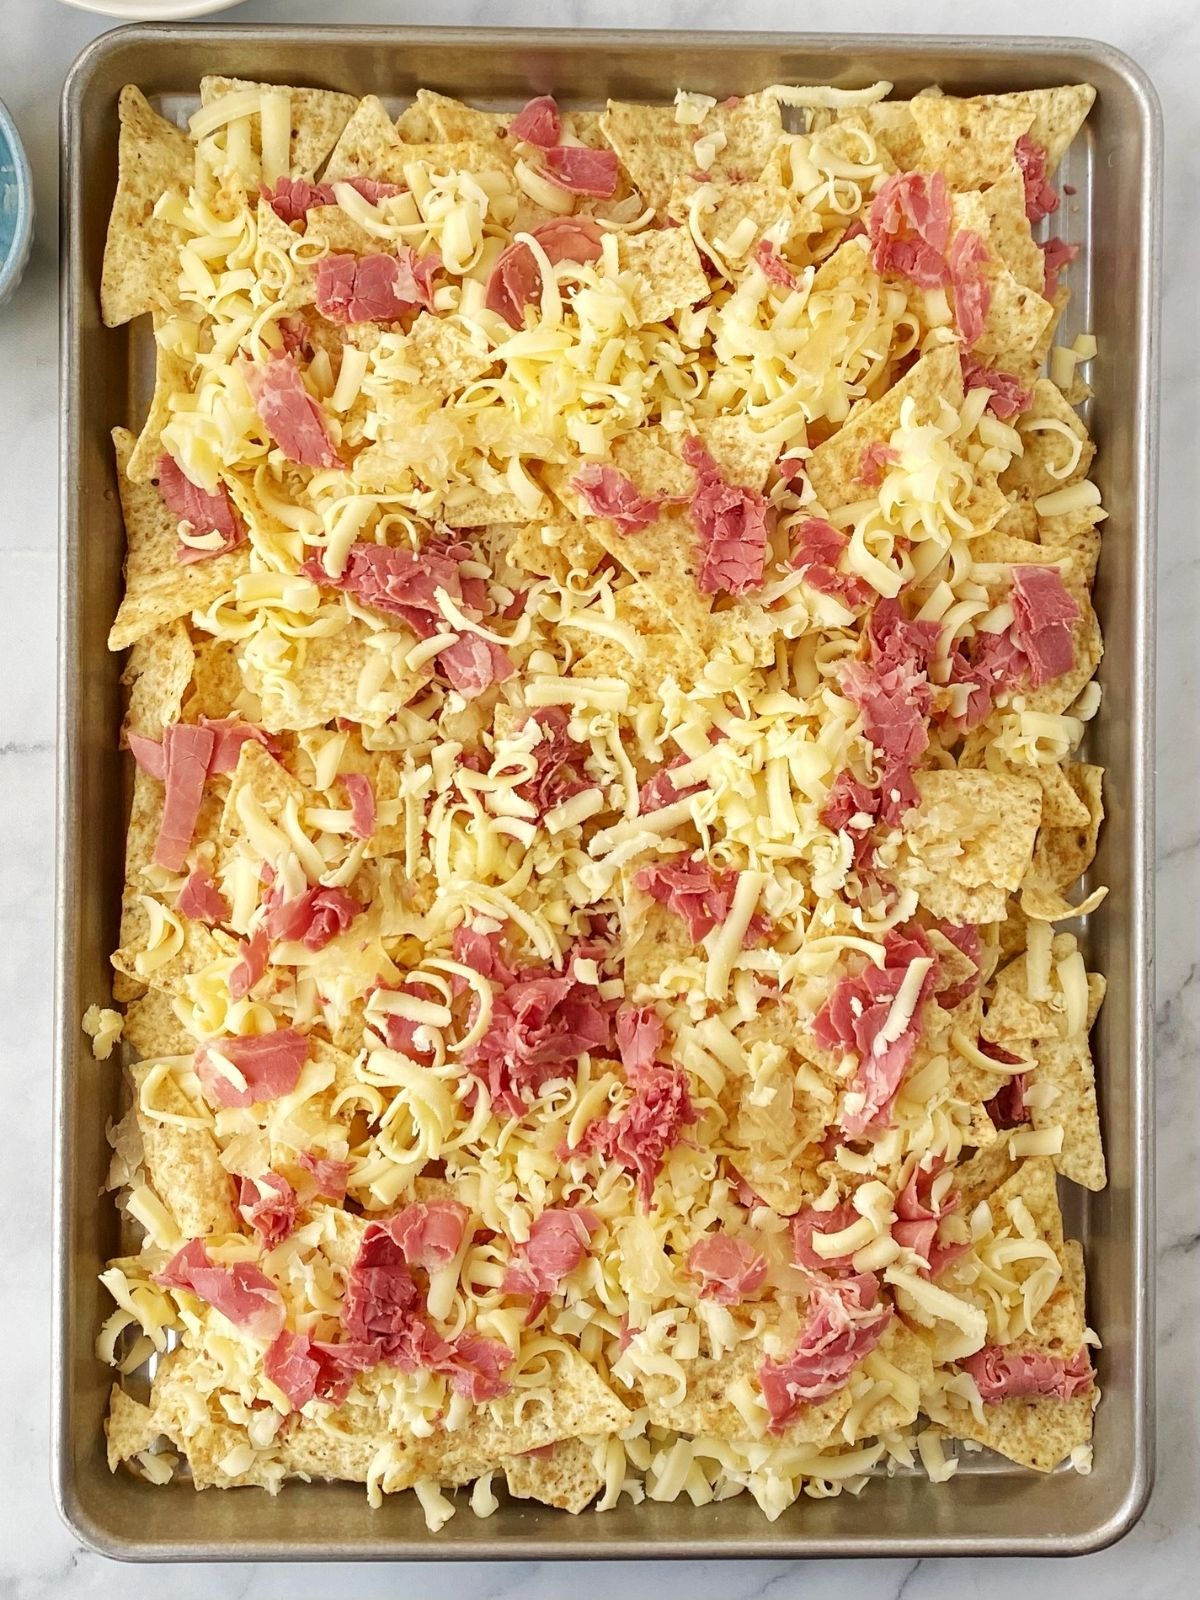 chips layered with corned beef, cheese, and sauerkraut